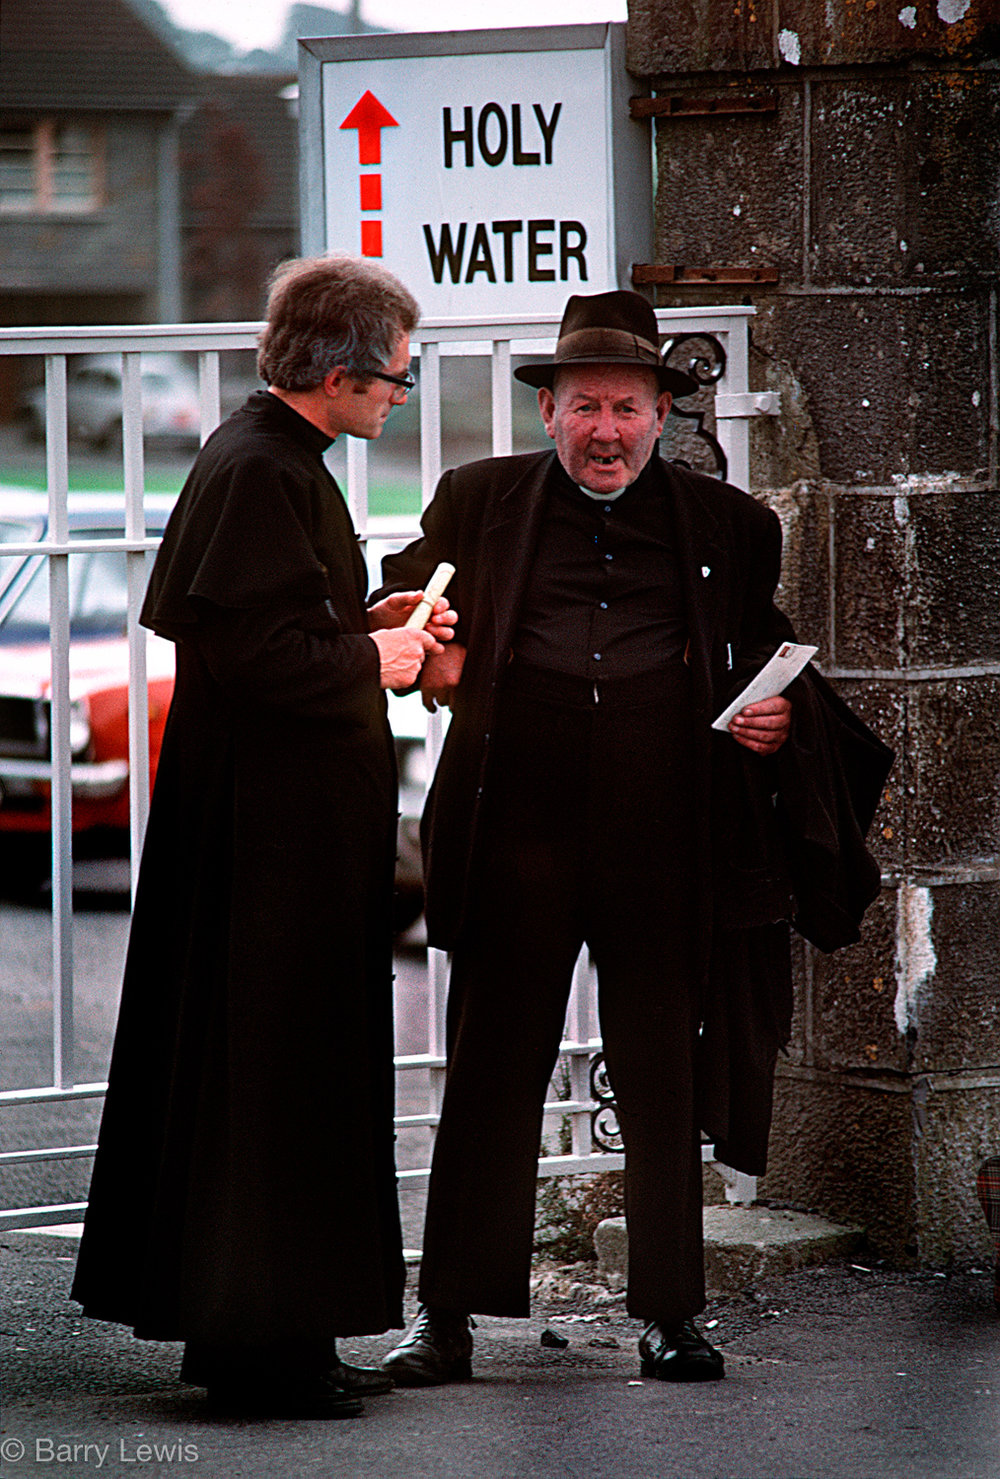 Priests awaiting the arrival of Pope John Paul II in 1979 to the Knock shrine in County Mayo, Ireland at which the Virgin Mary, together with Saint Joseph and John the Evangelist, allegedly appeared on 21 August 1879.